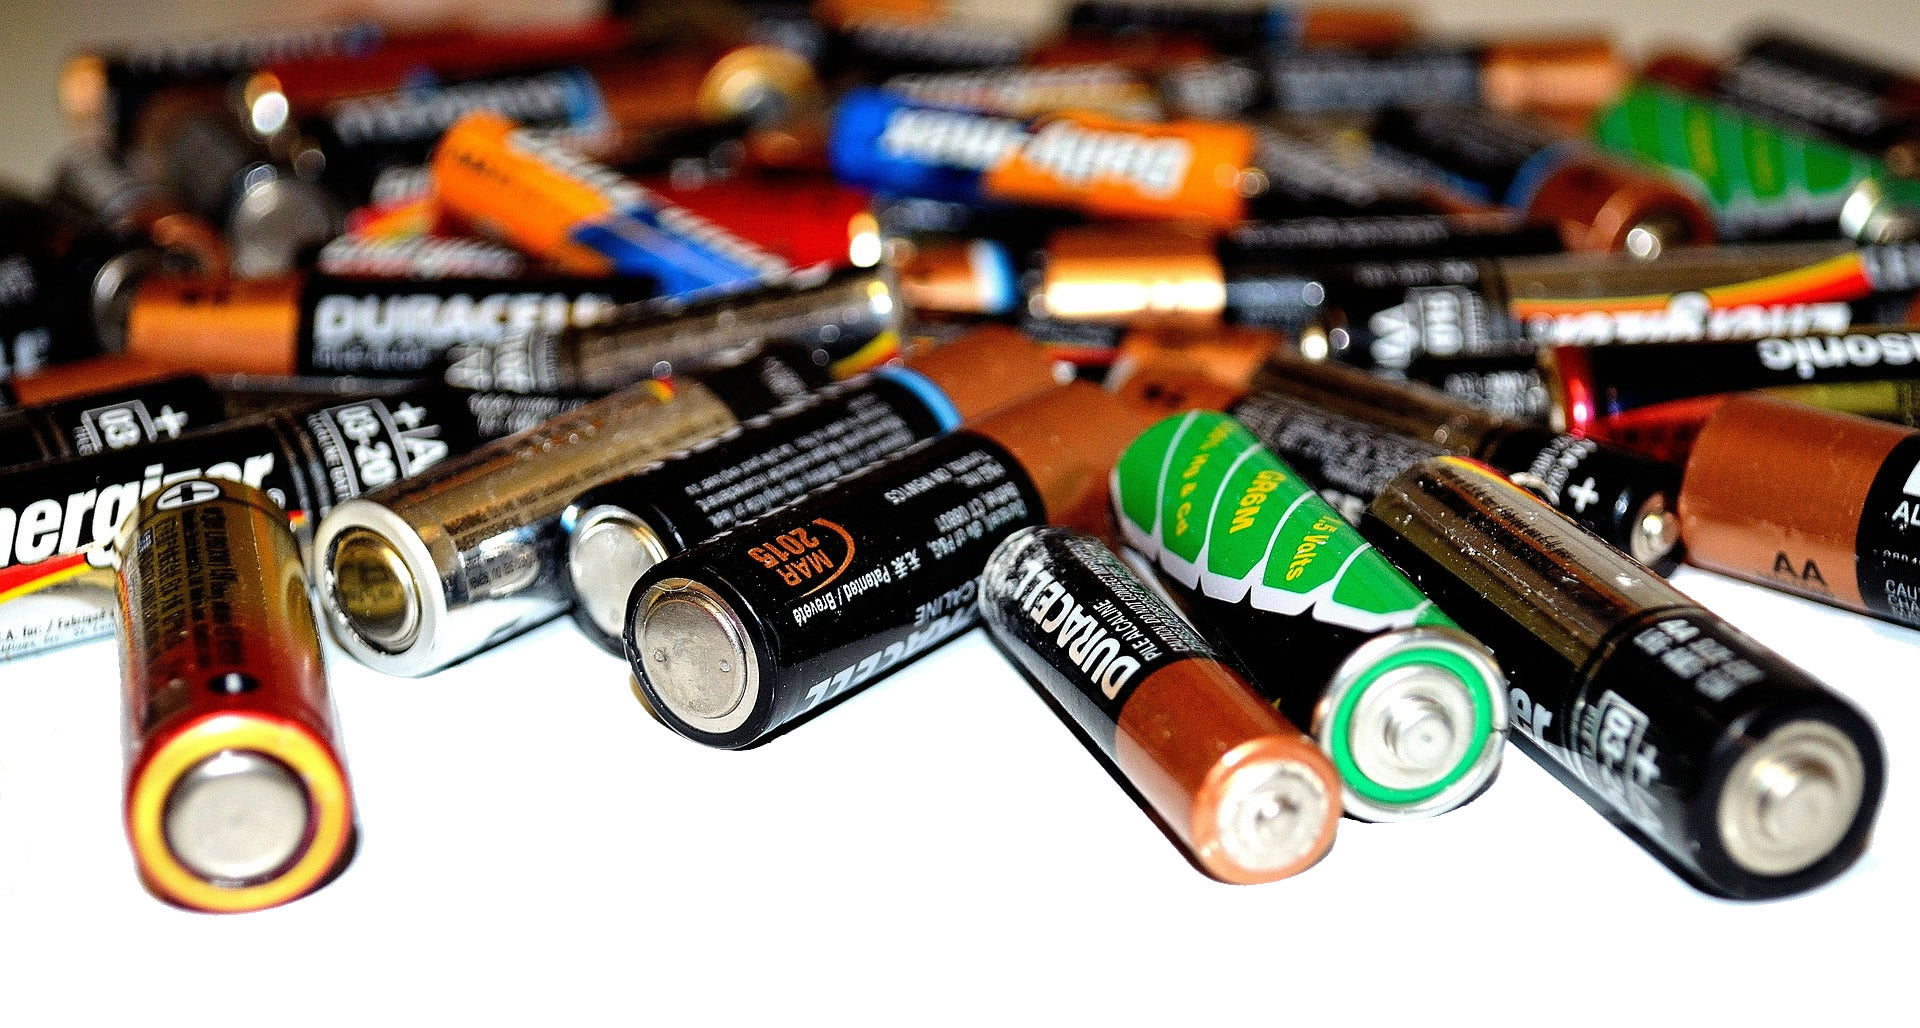 The Top 5 Battery Saving Hacks Of All Time